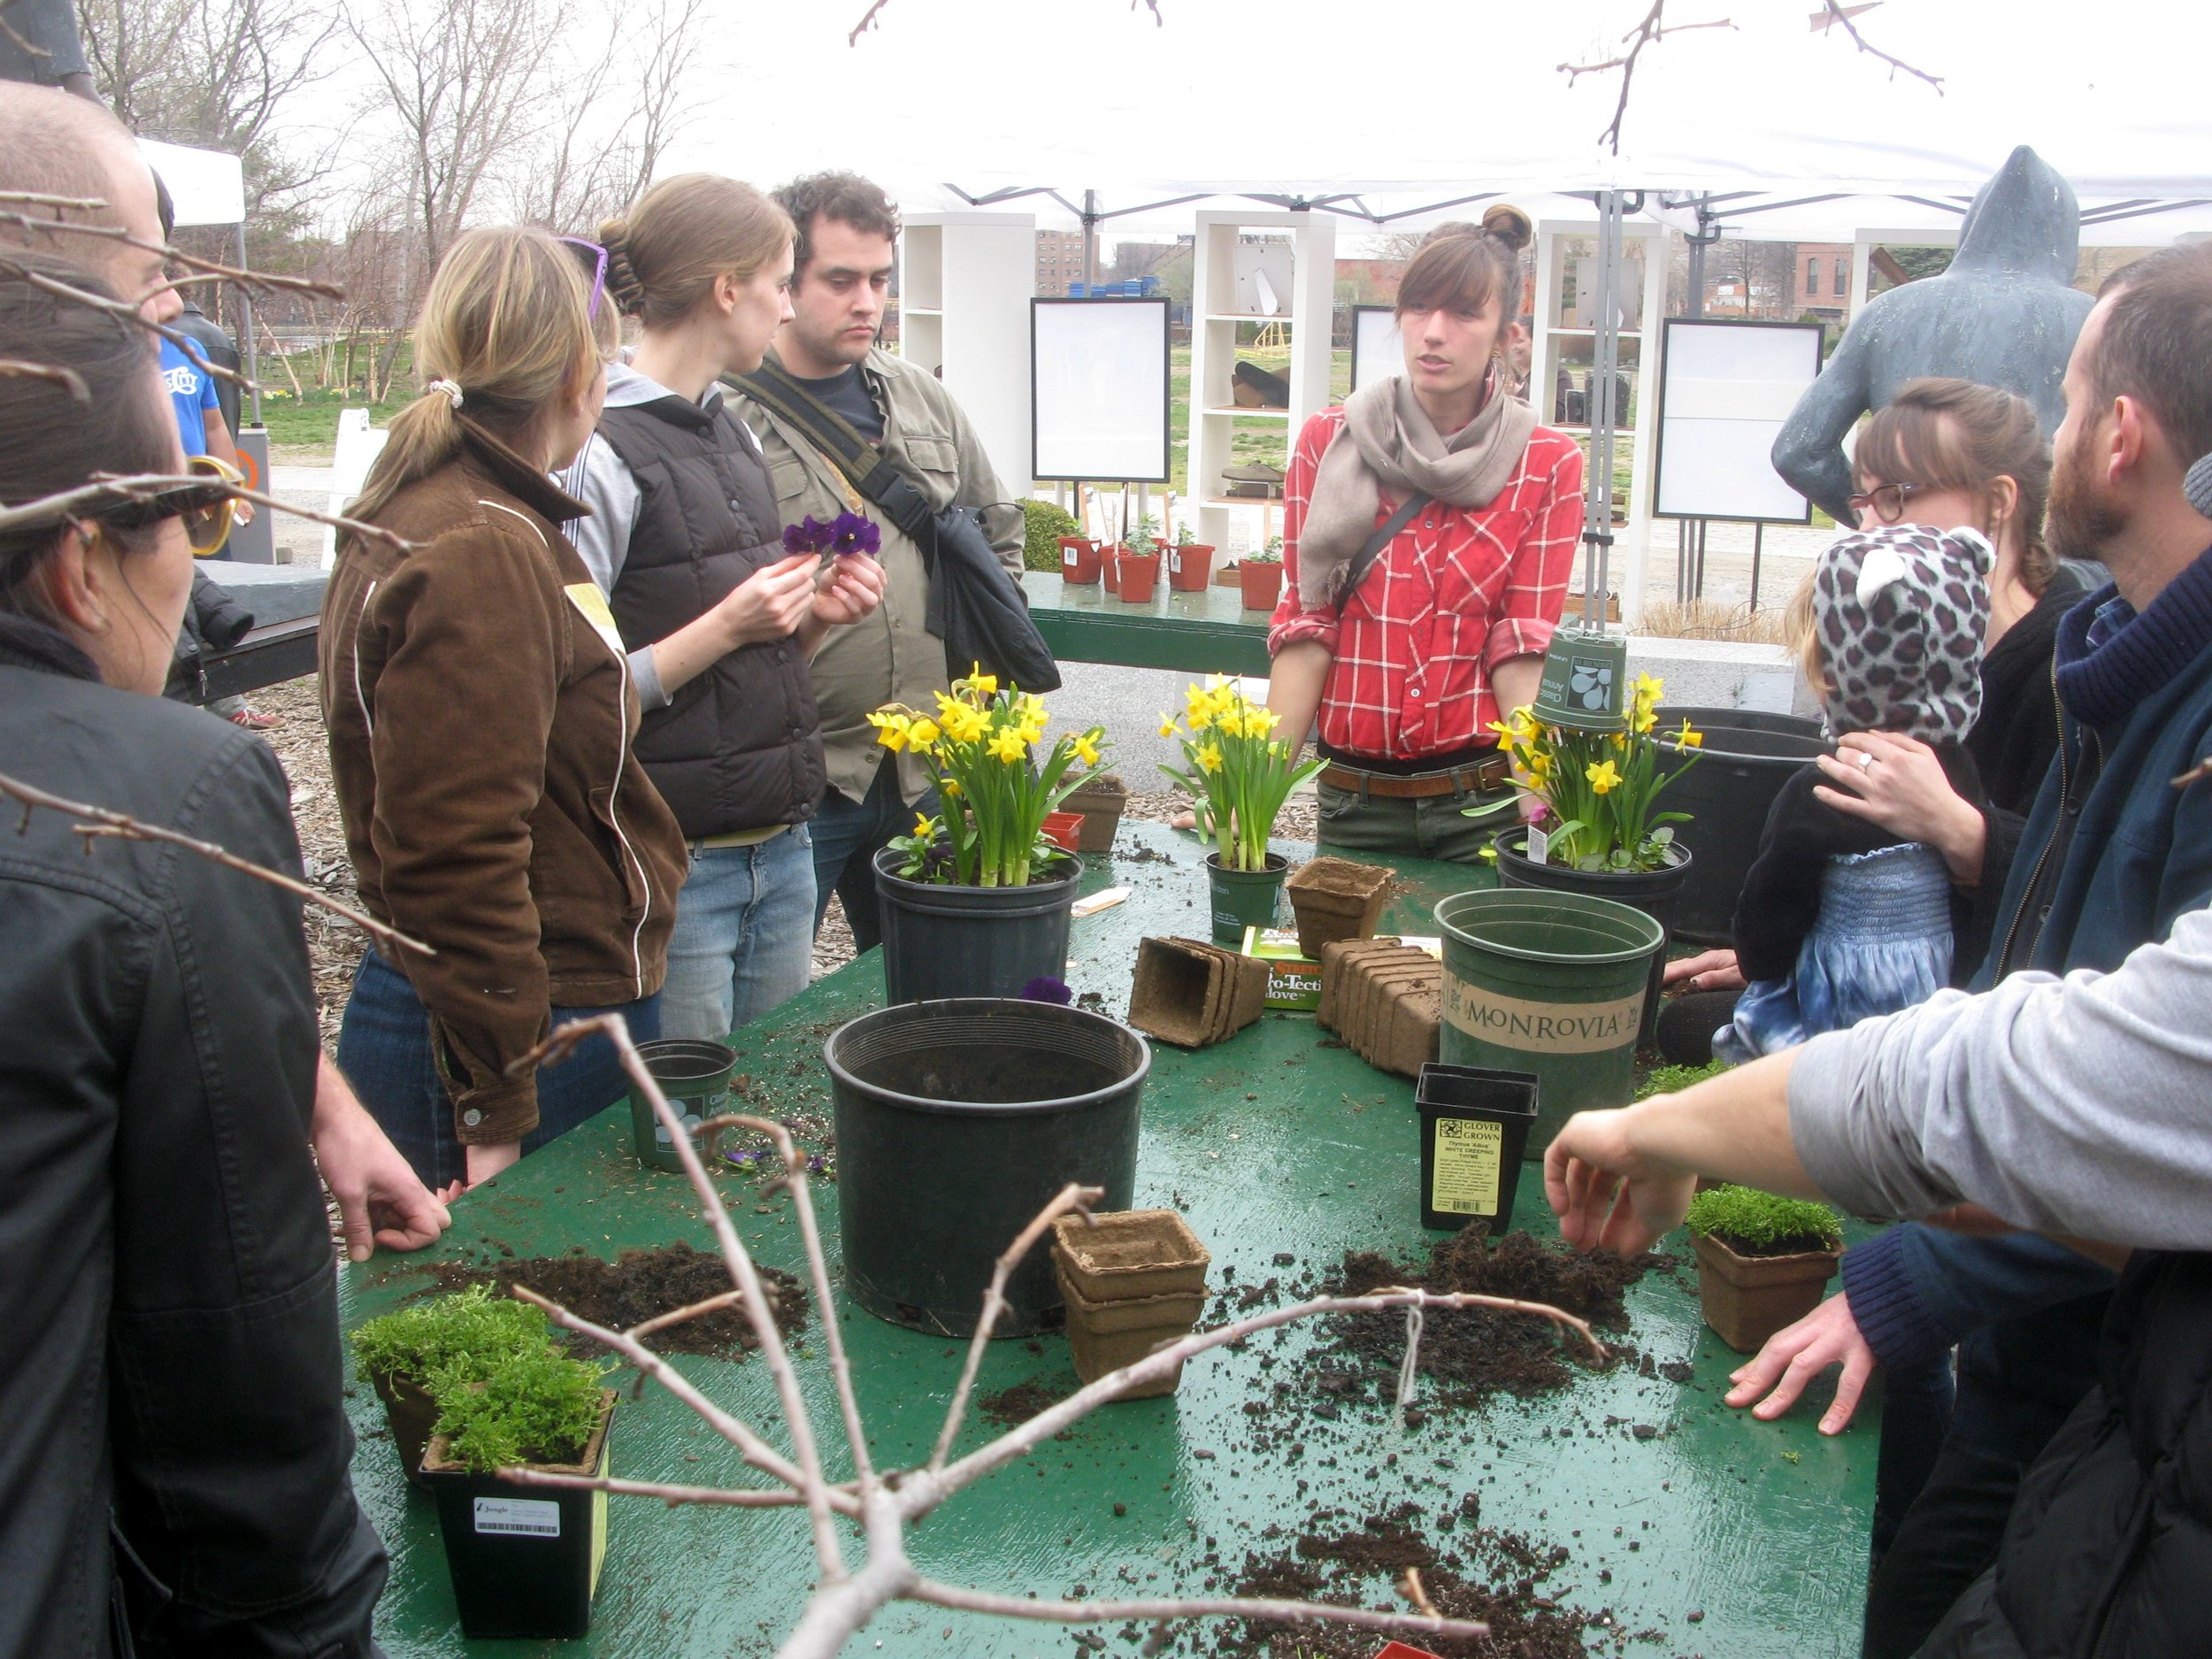 Container Gardening workshop @ Socrates Sculpture Park by Nick Normal/CC BY